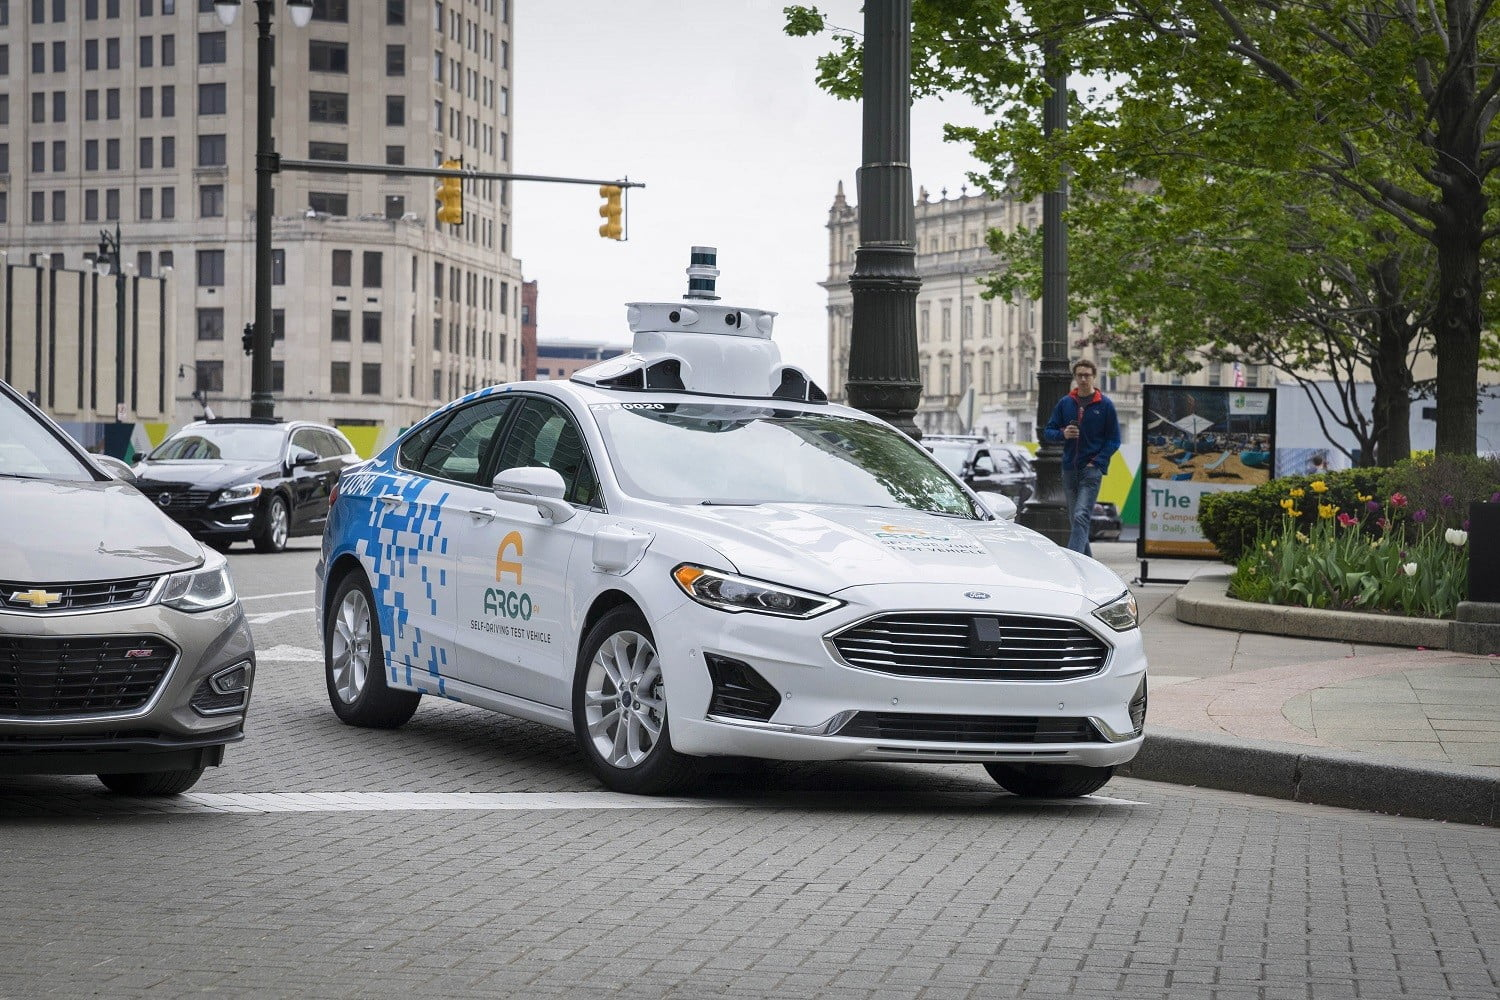 Volkswagen And Ford Partner On Electric Cars Autonomous Driving